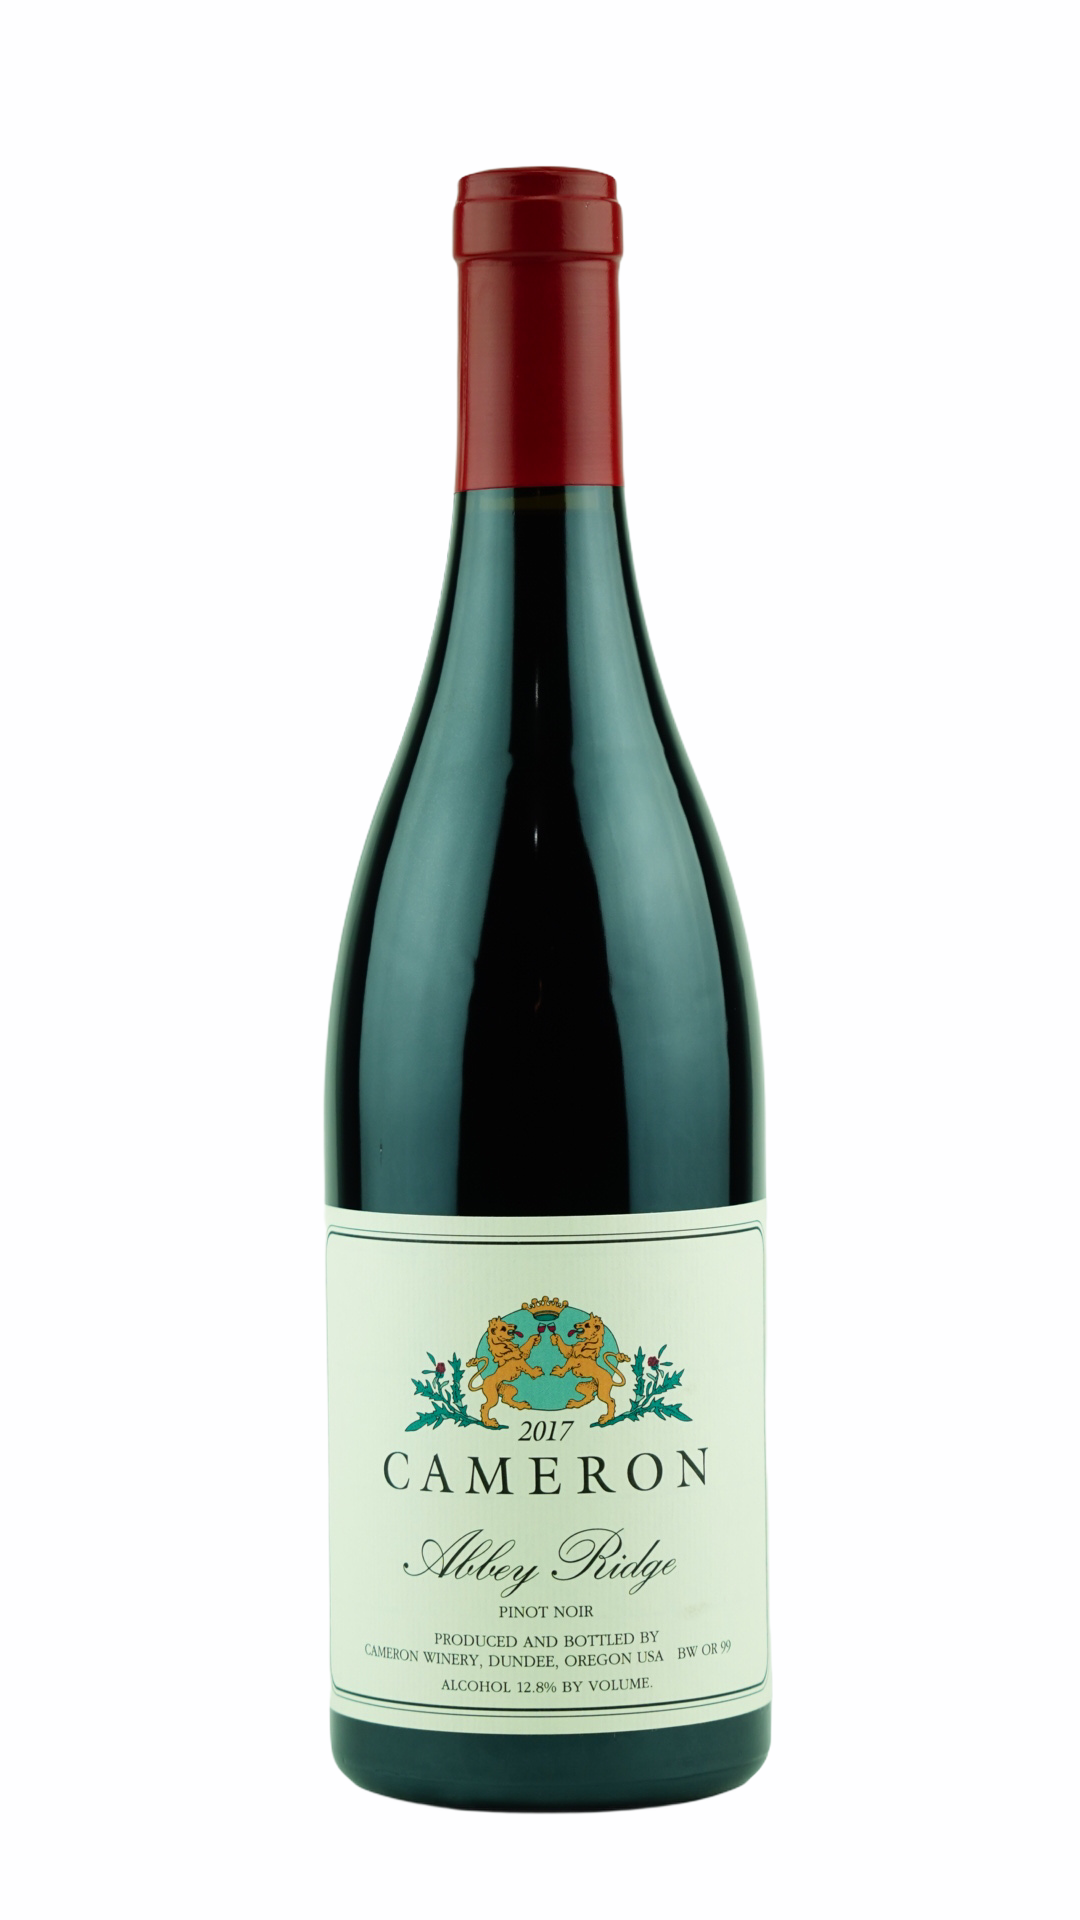 Cameron Abbey Ridge Pinot Noir 2017 (750ml)